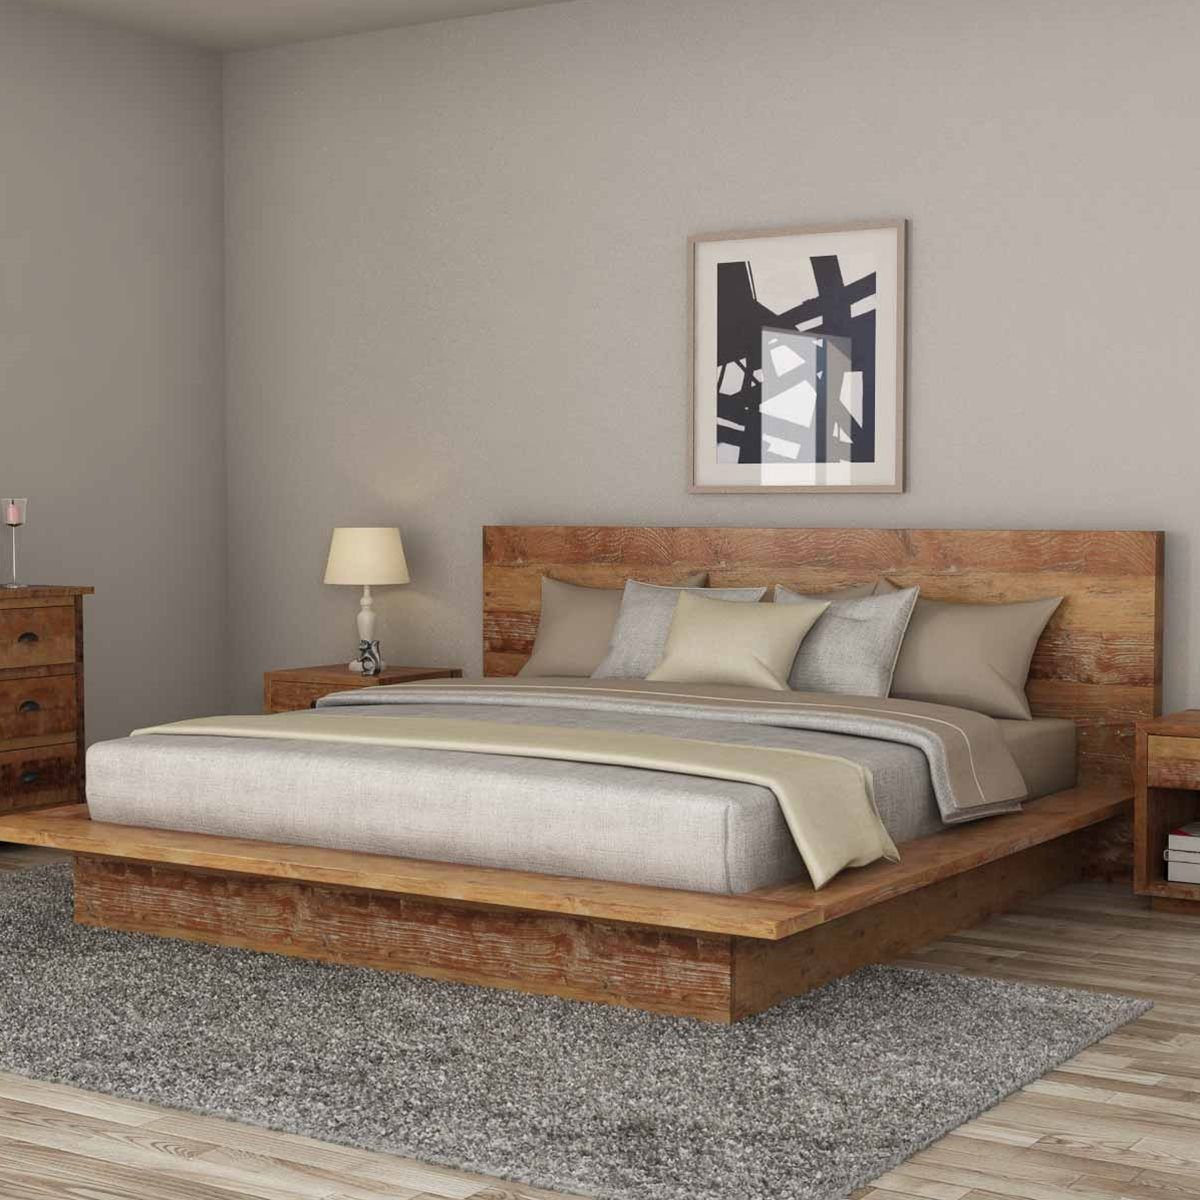 Britain Rustic Teak Wood Platform Bed Frame Platform Bed Designs Rustic Platform Bed Wood Bed Design